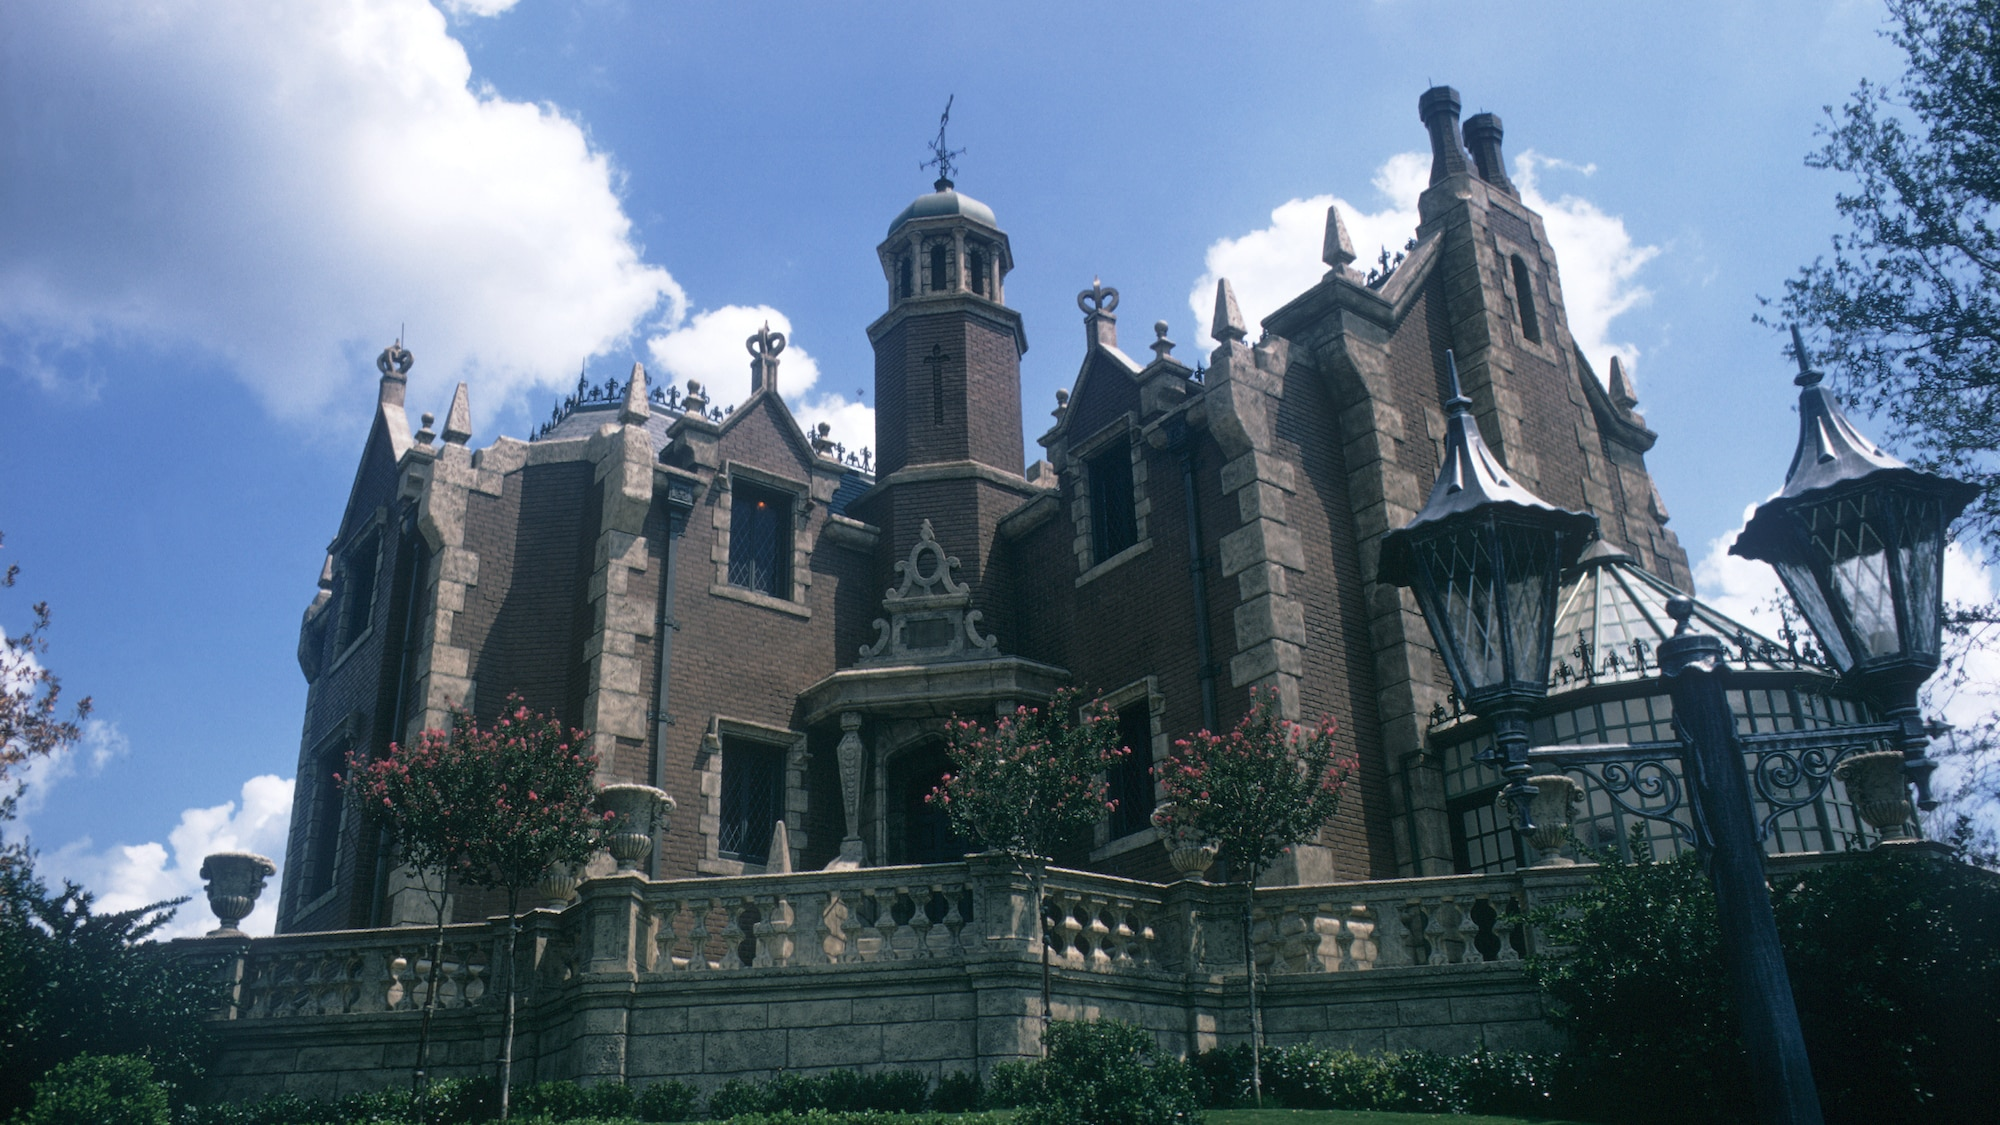 Image of the Haunted Mansion exterior during the day.